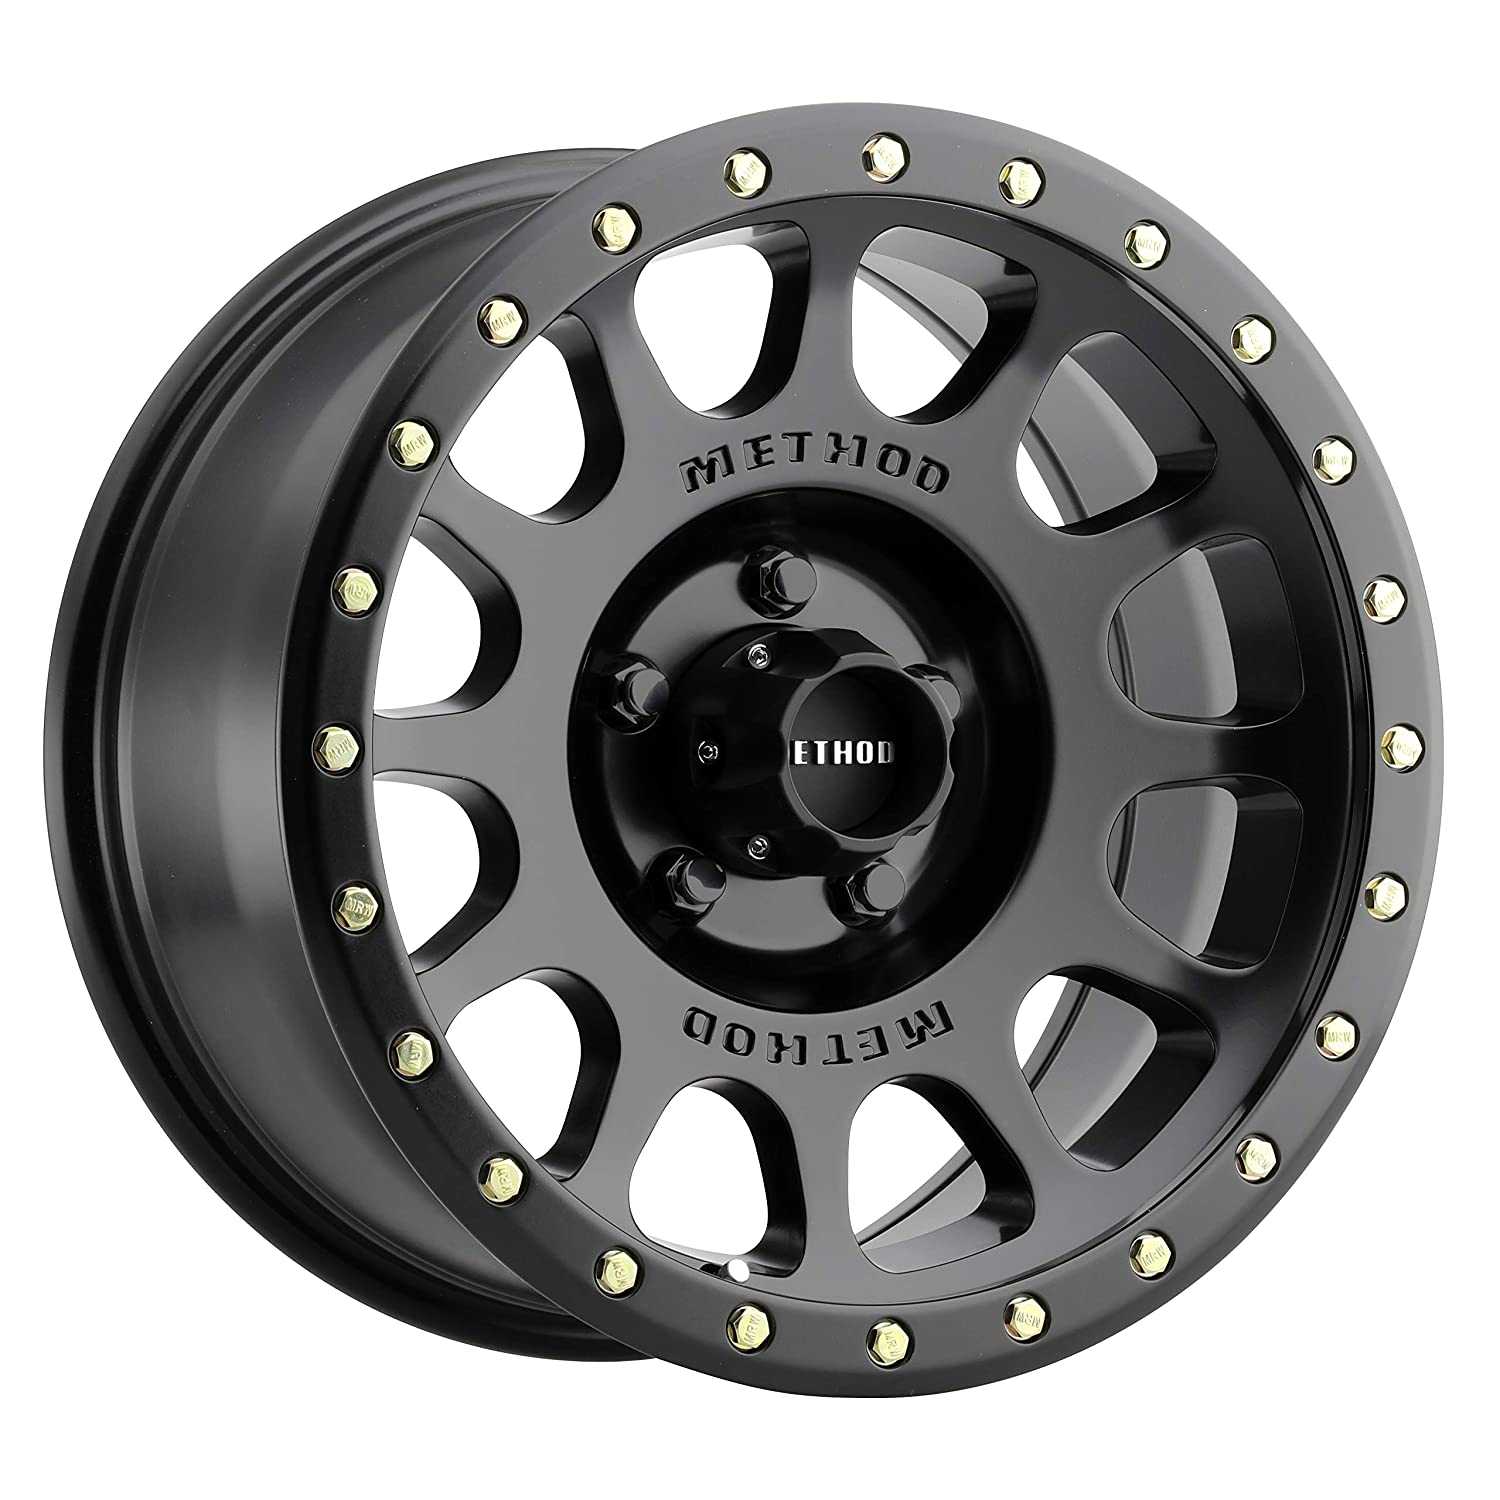 Method Race Wheels NV Matte Black Wheel with Zinc Plated Accent Bolts (178.5''/5150mm 0mm Offset) MR30578558500